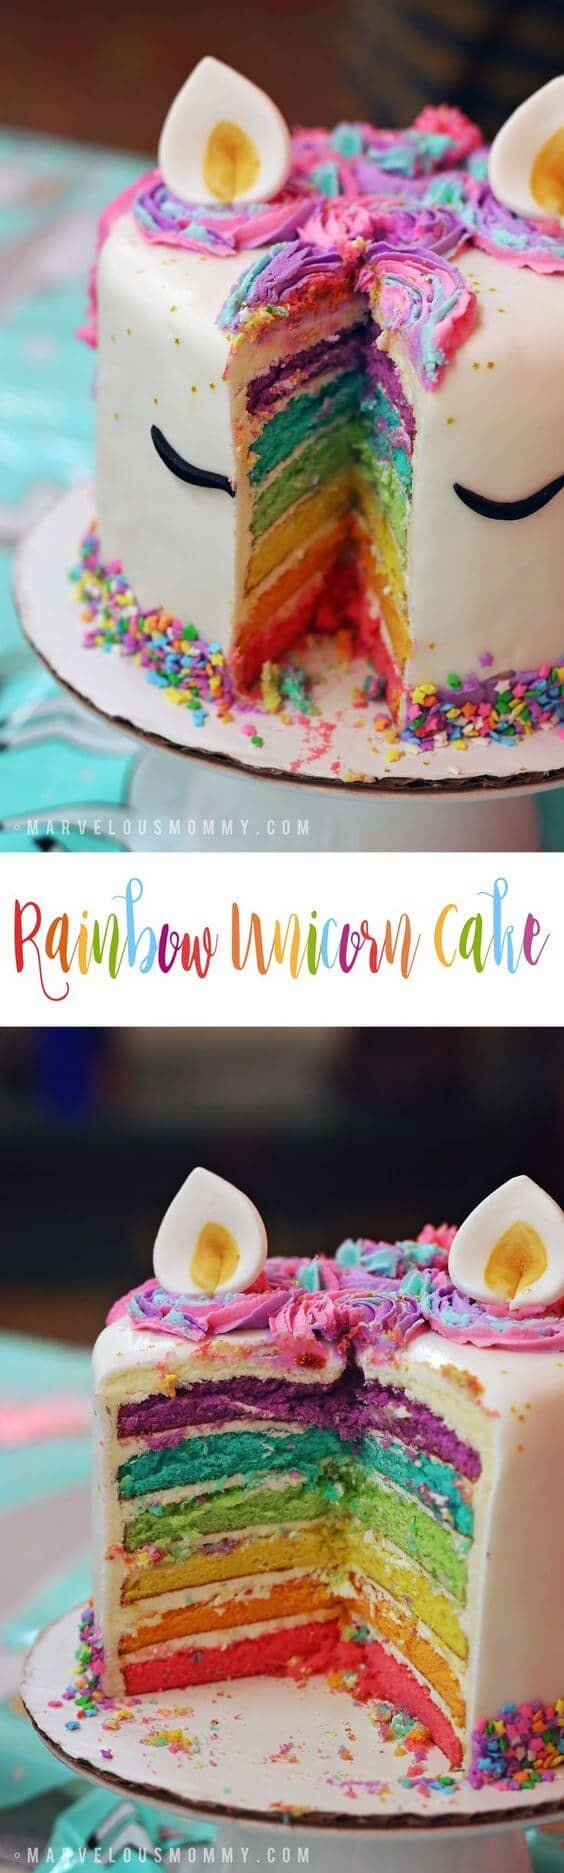 6-Layer Rainbow Bright Unicorn Cake